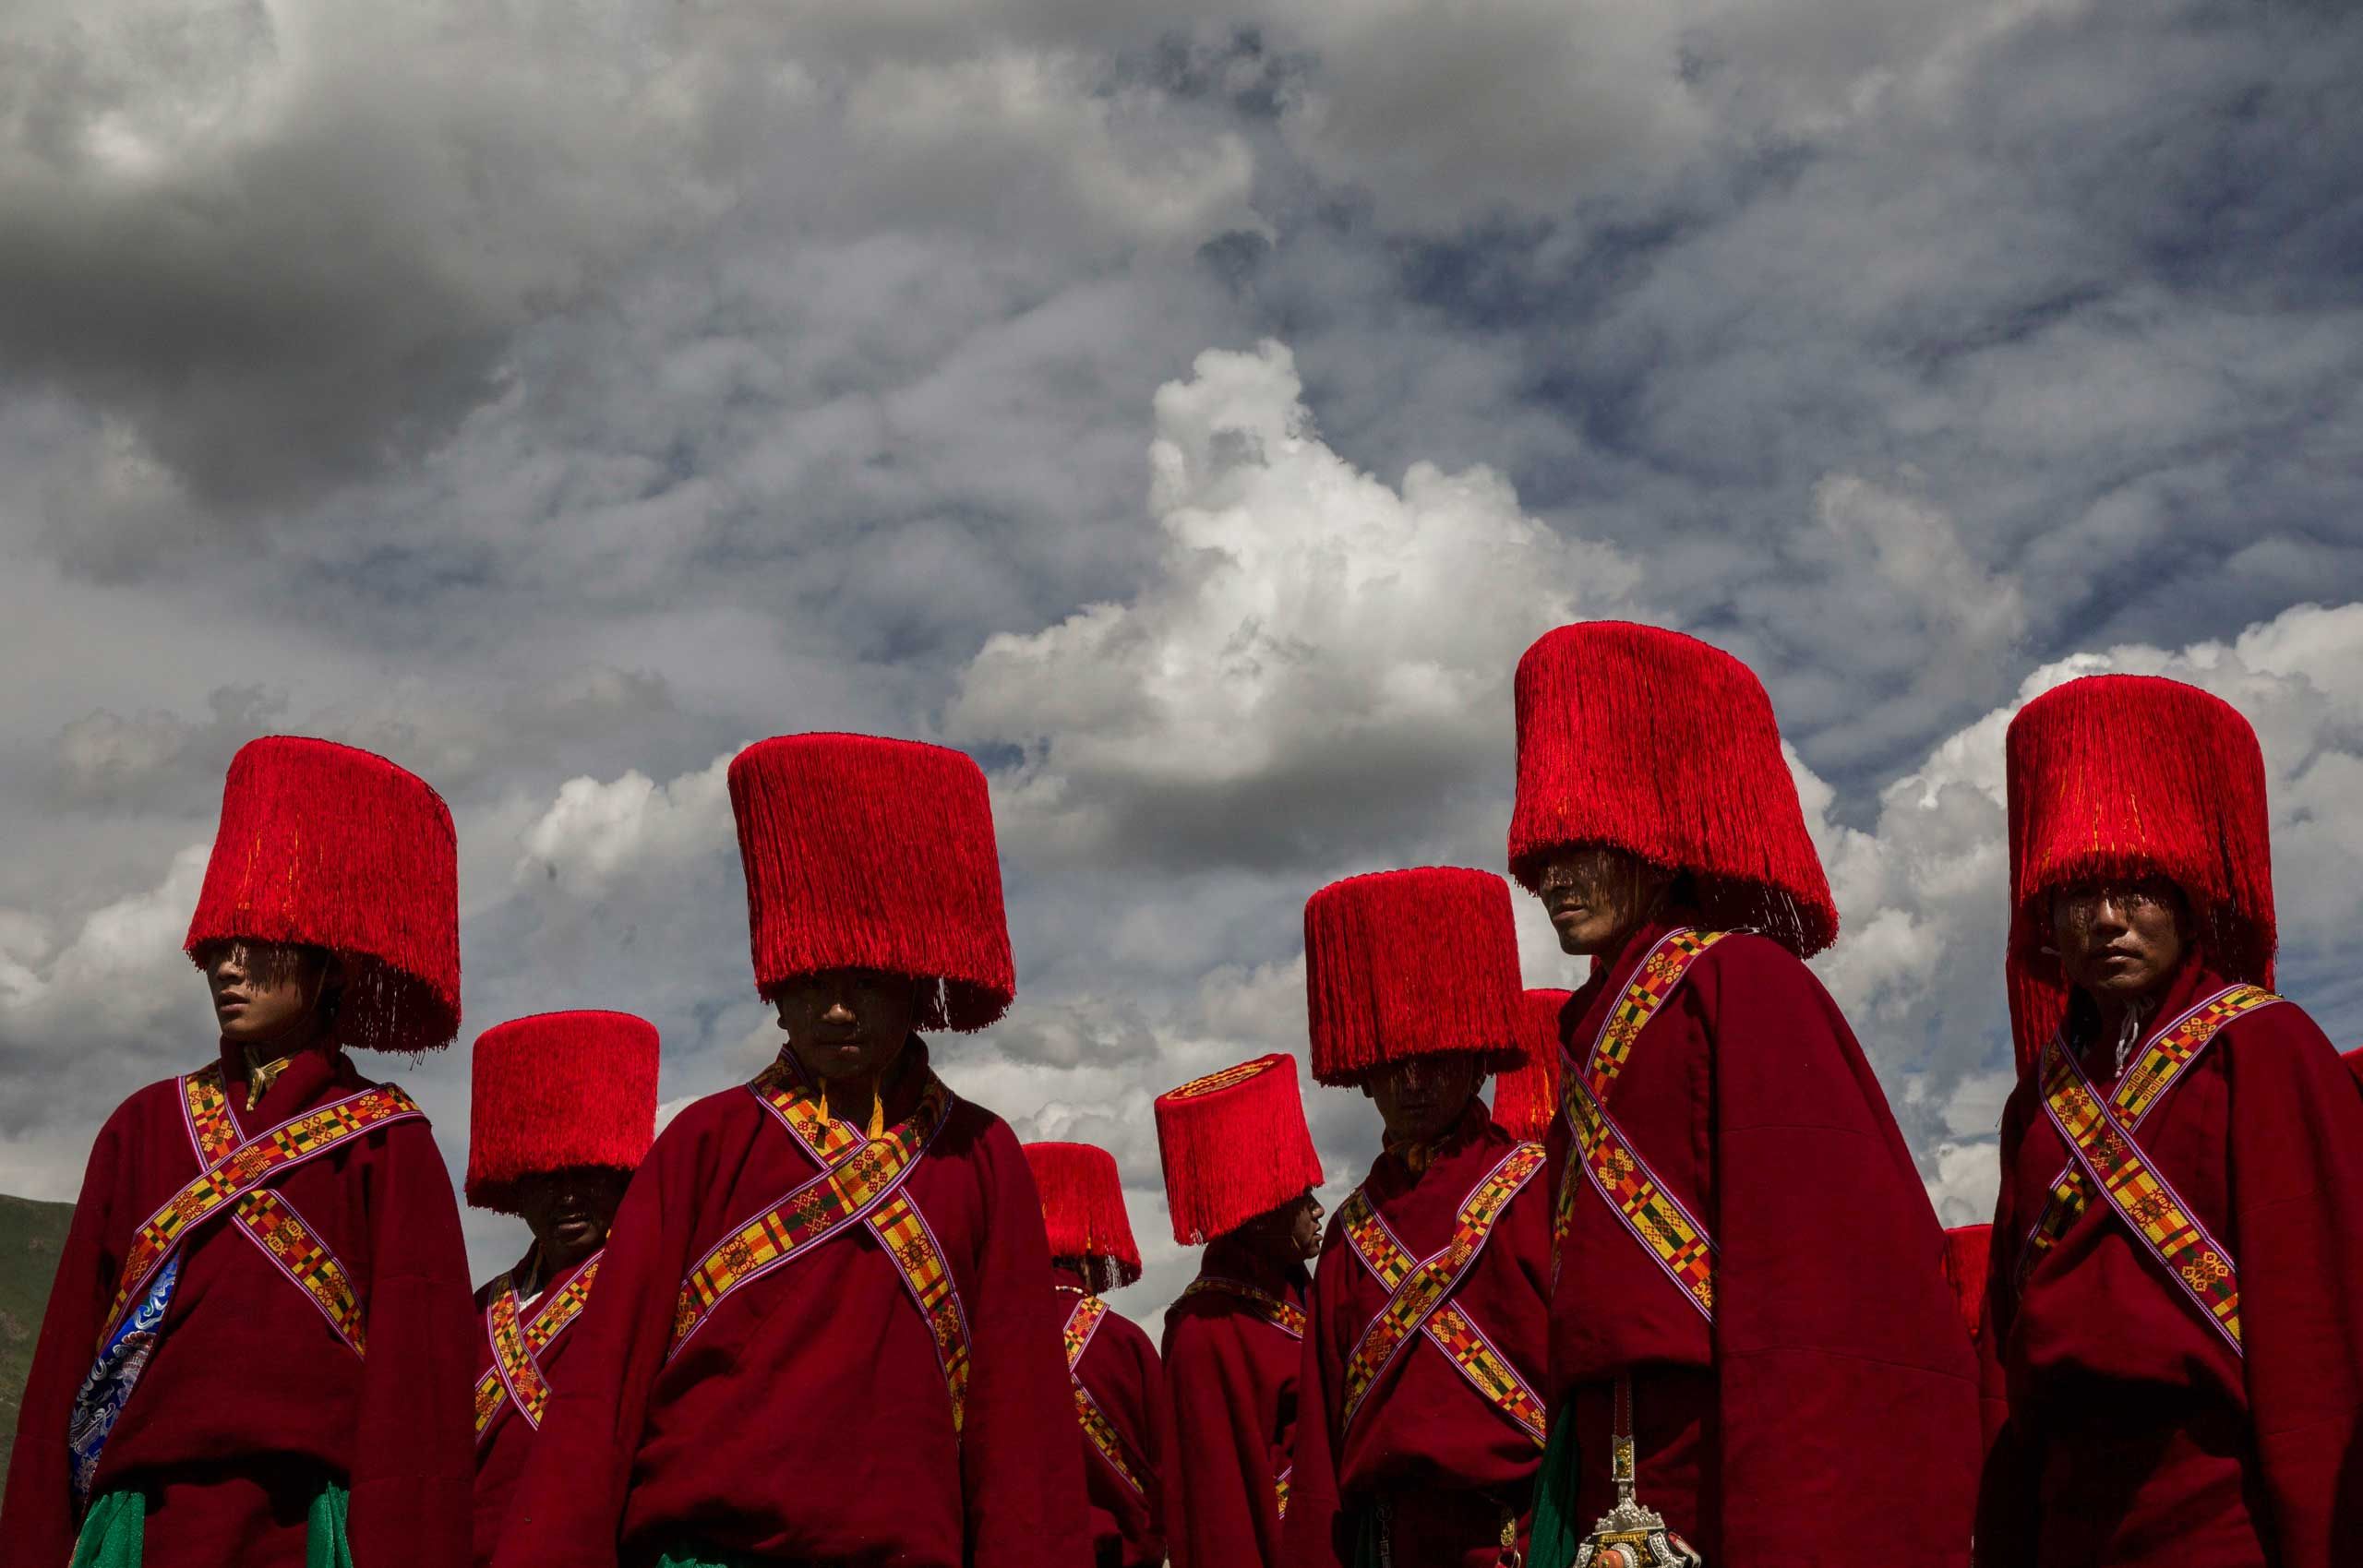 Ethnic Tibetans in traditional dress wait to perform at a local government sponsored festival on the Tibetan Plateau in Yushu County, Qinghai, China, on on July 25, 2015.